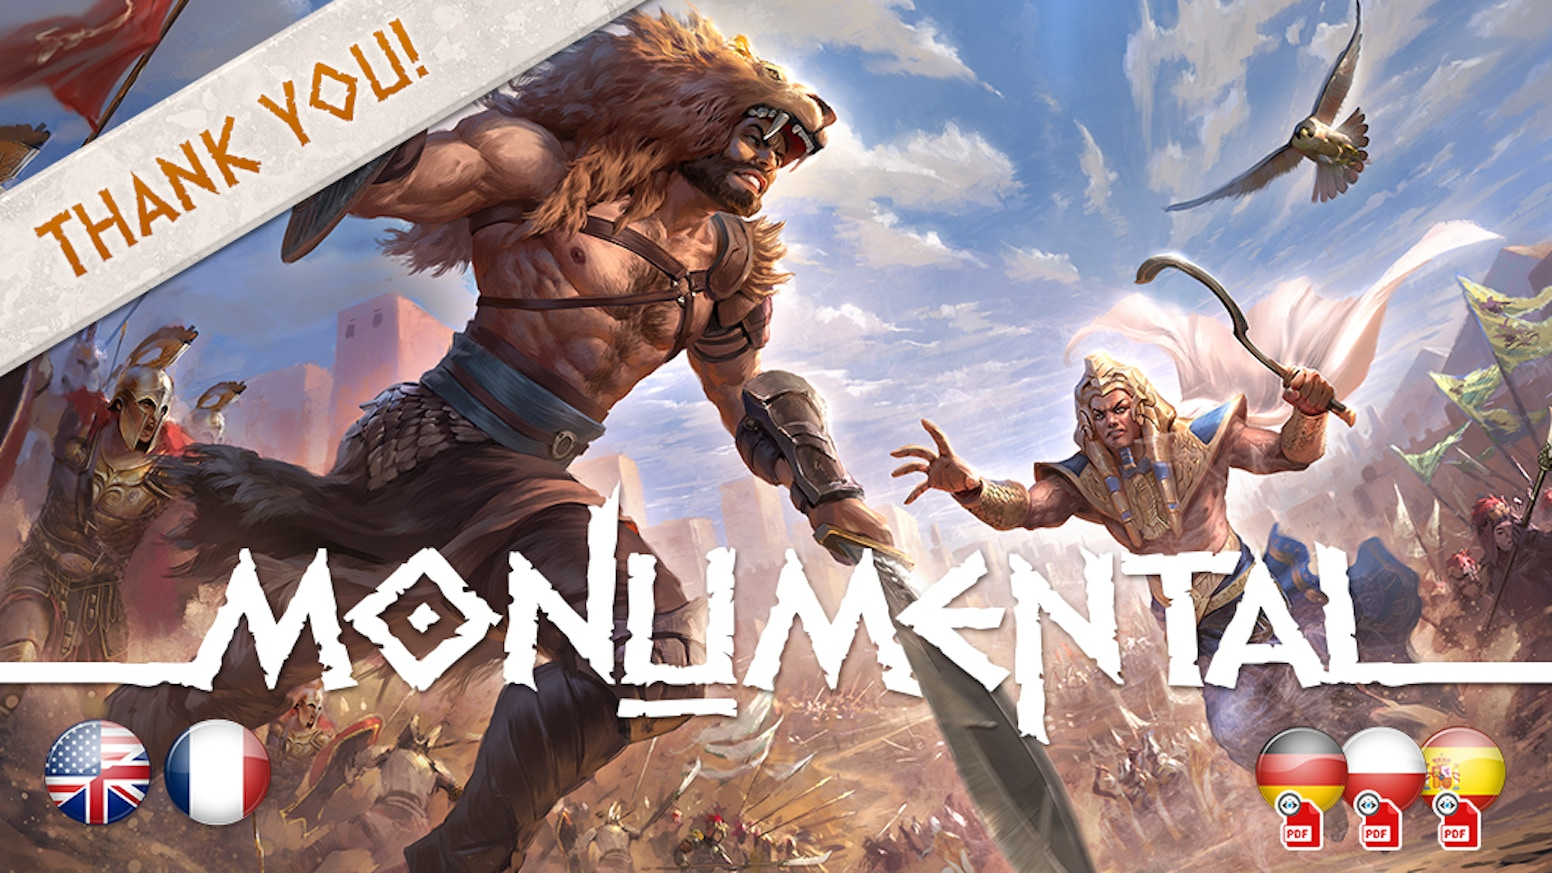 Monumental is the next generation civilization game with a mix of innovative mechanics taking the best from deckbuilding and 4X games.